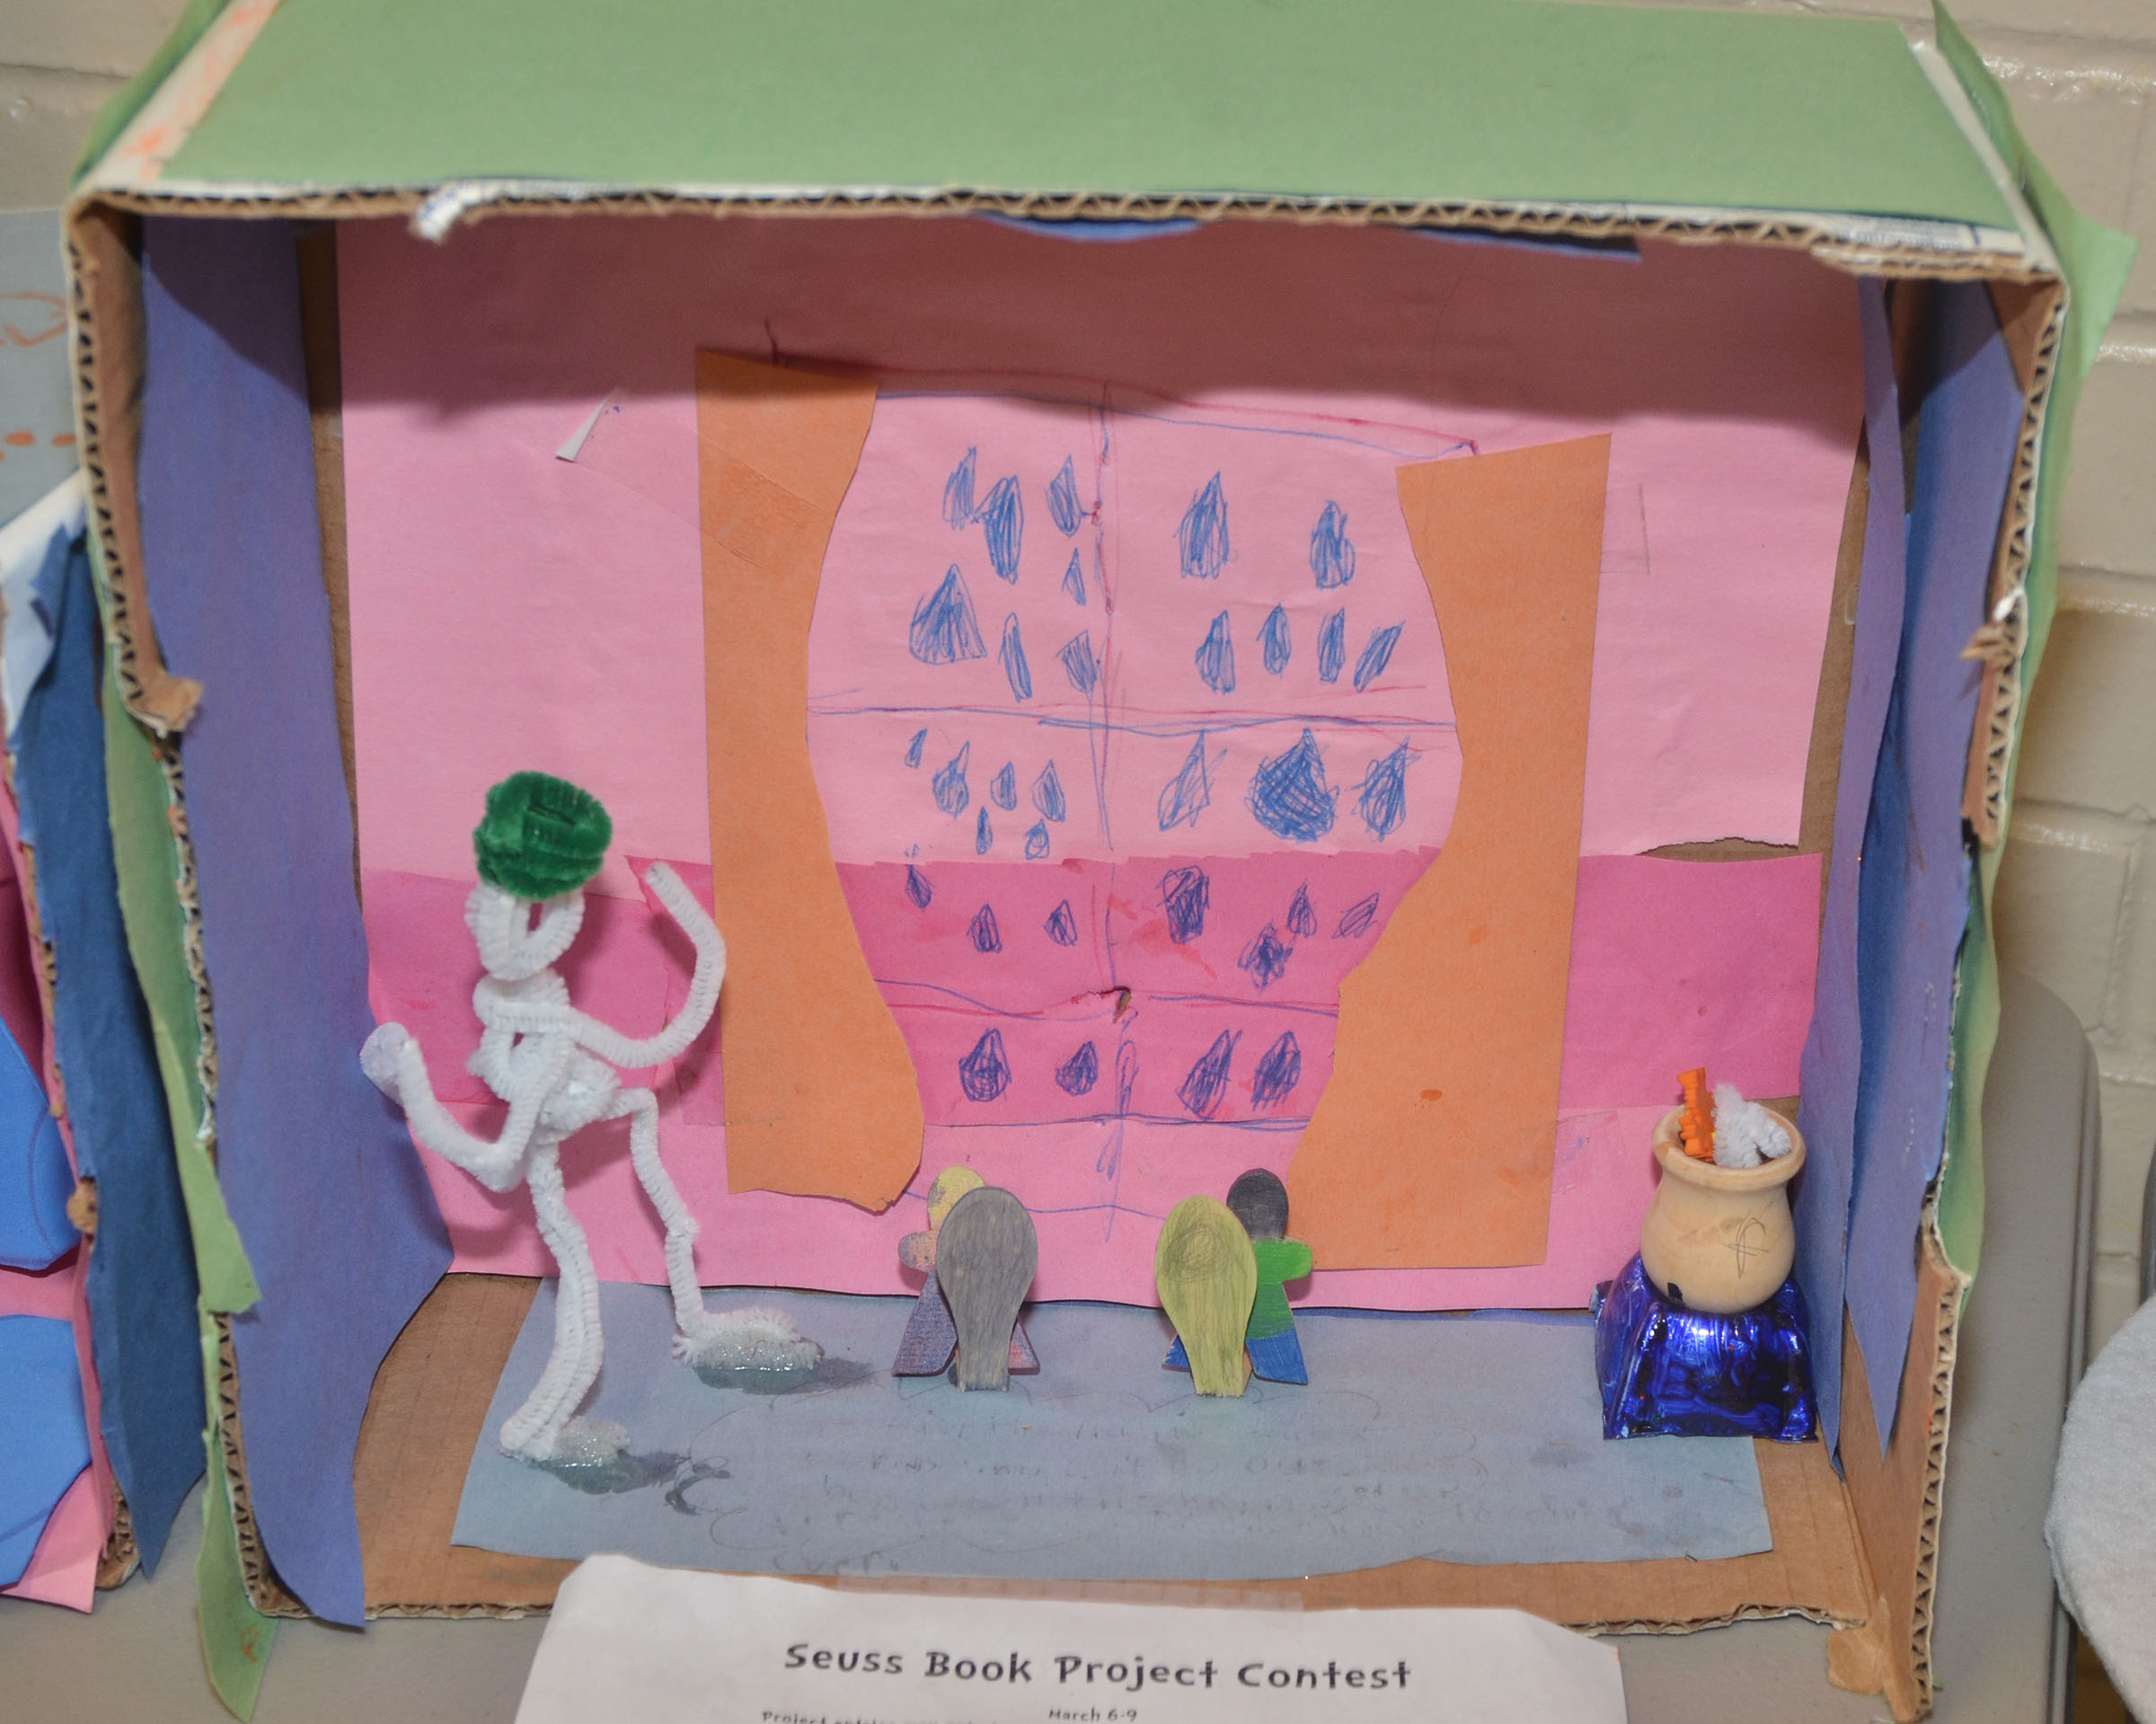 CES students participated in a Seuss Brook Project, hosted by the school's media center. Winners will be announced soon.